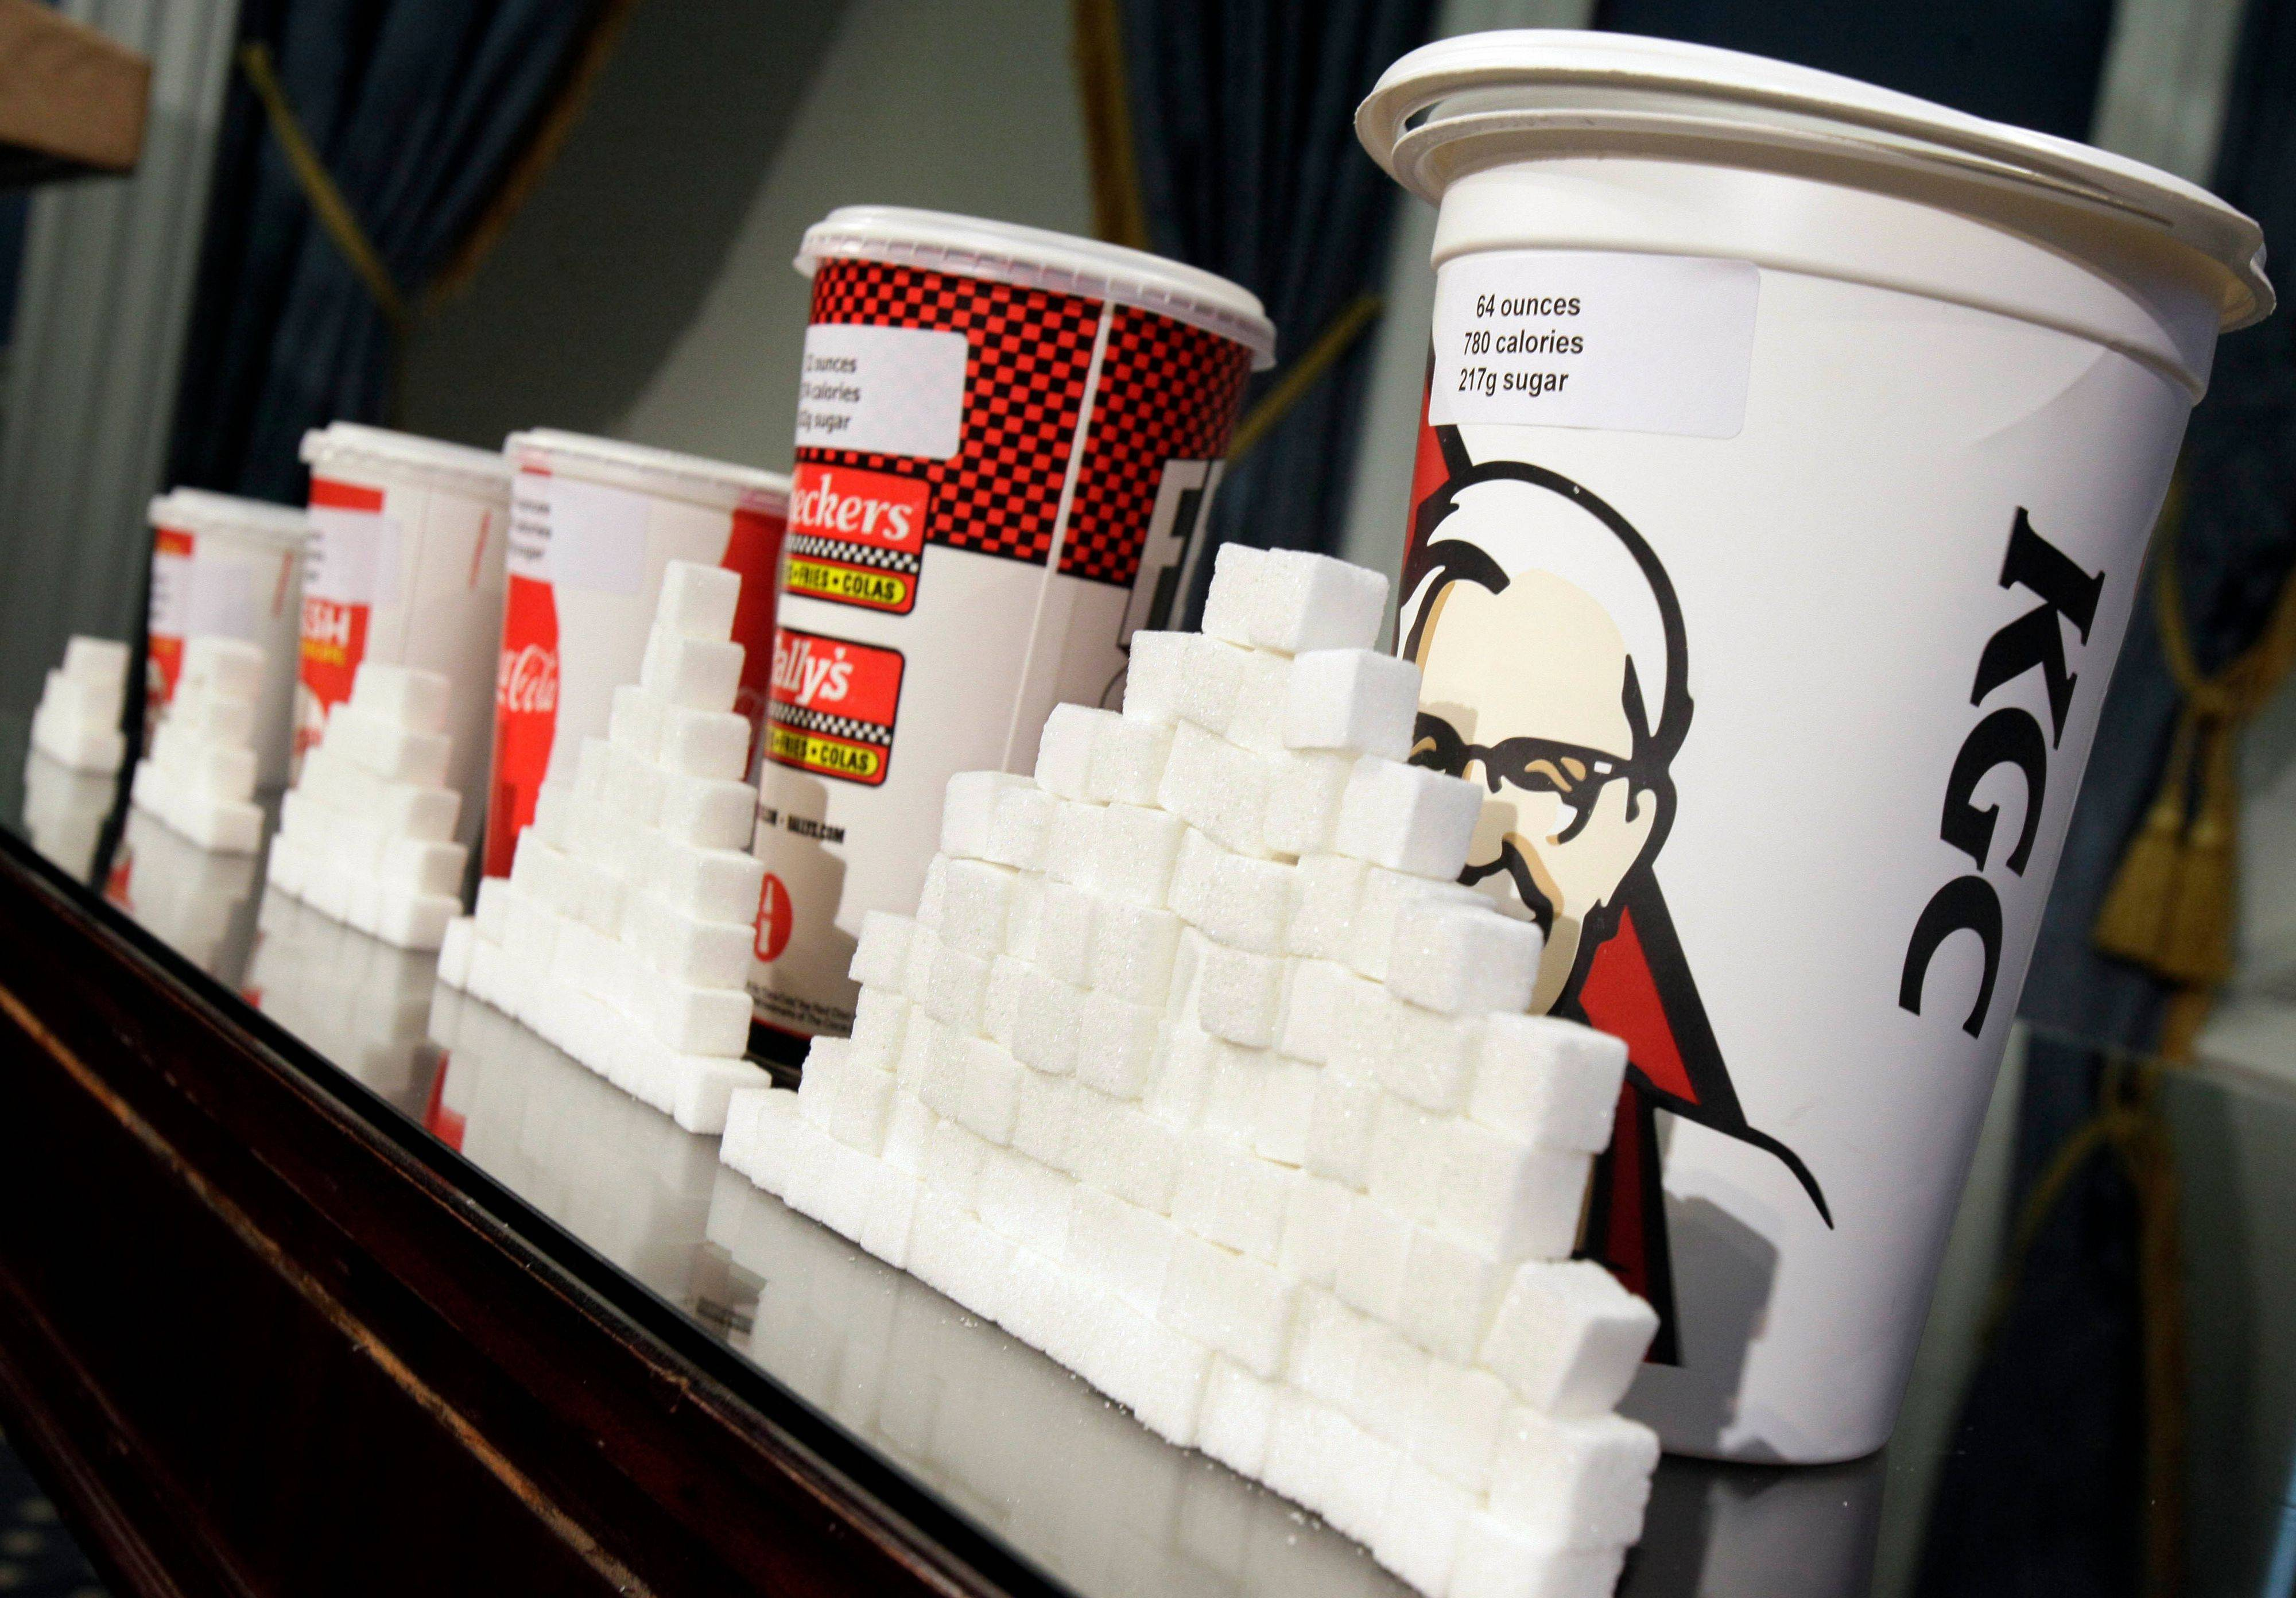 A judge struck down New York City's groundbreaking limit on the size of sugar-laden drinks Monday shortly before it was set to take effect.